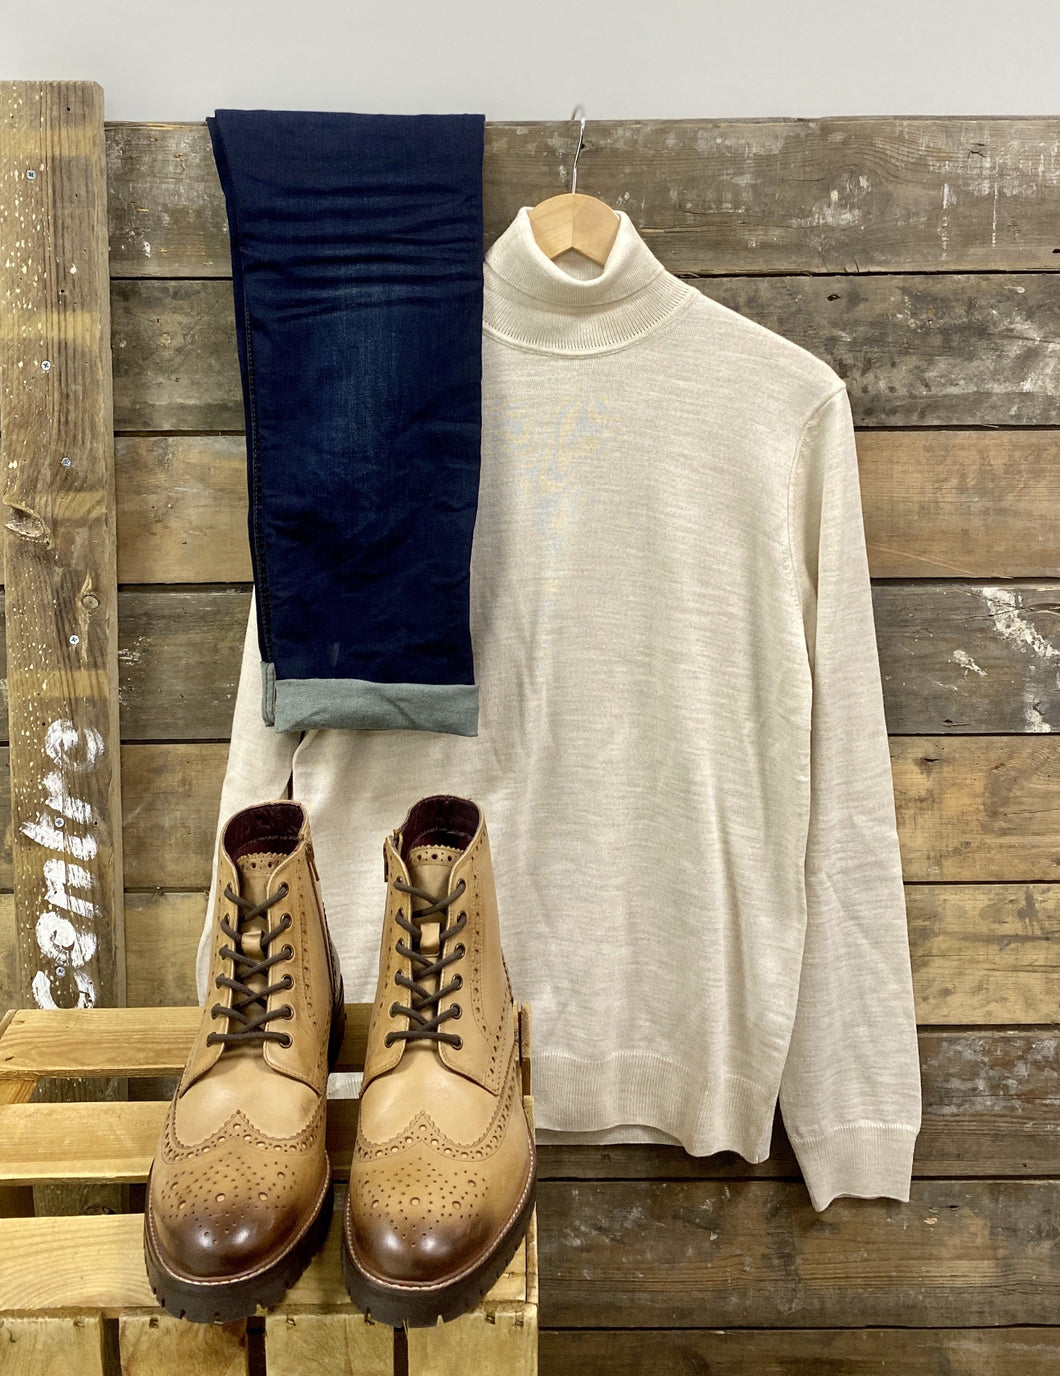 Knit Weekend Casual Look casual-friday-sand-wool-roll-neck / blend-dark-wash-jeans / london-brogues-billy-tan-brogue-boots